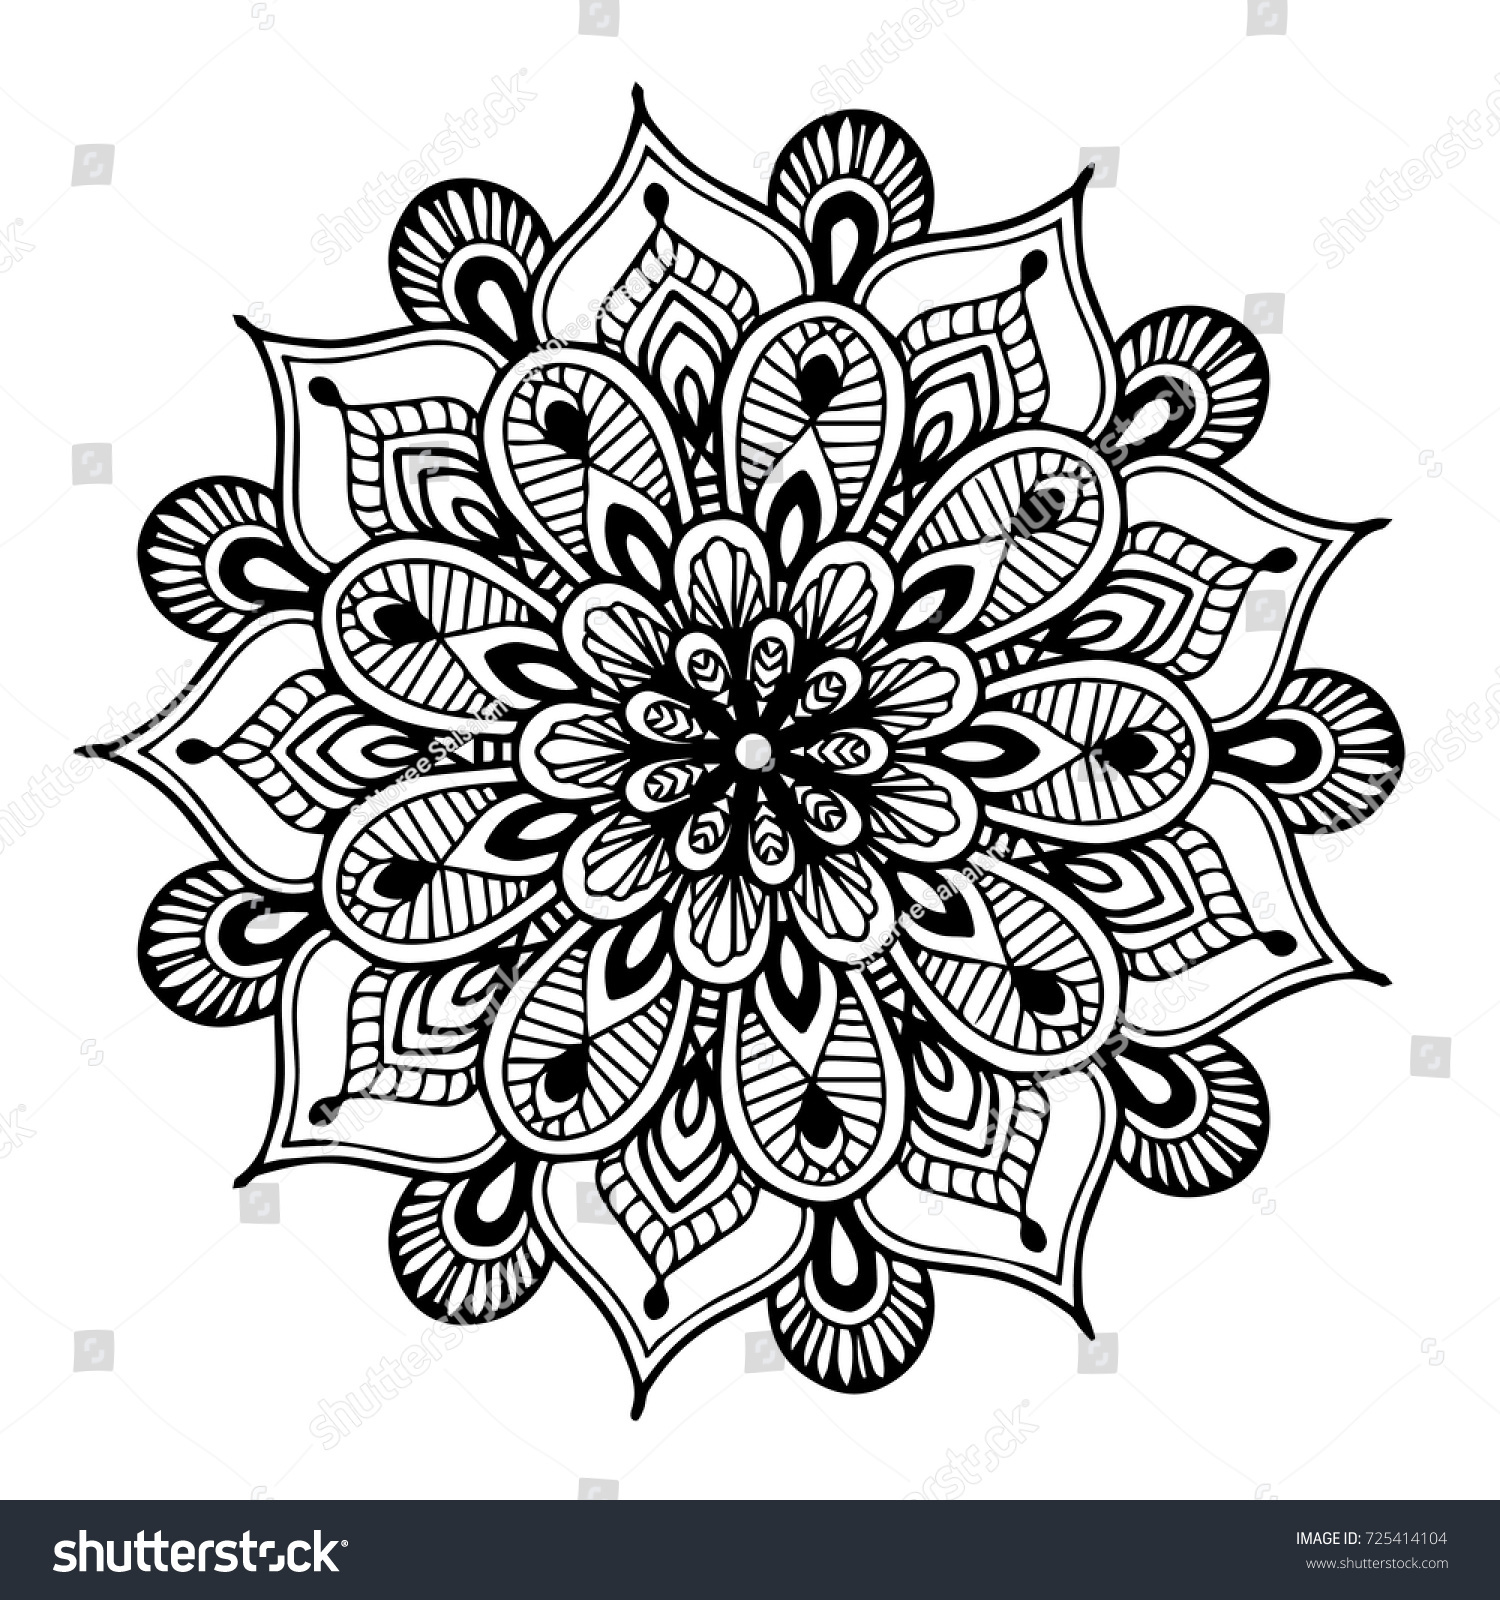 Mandala For Coloring Book Decorative Round Ornaments Unusual Flower Shape Oriental Vector